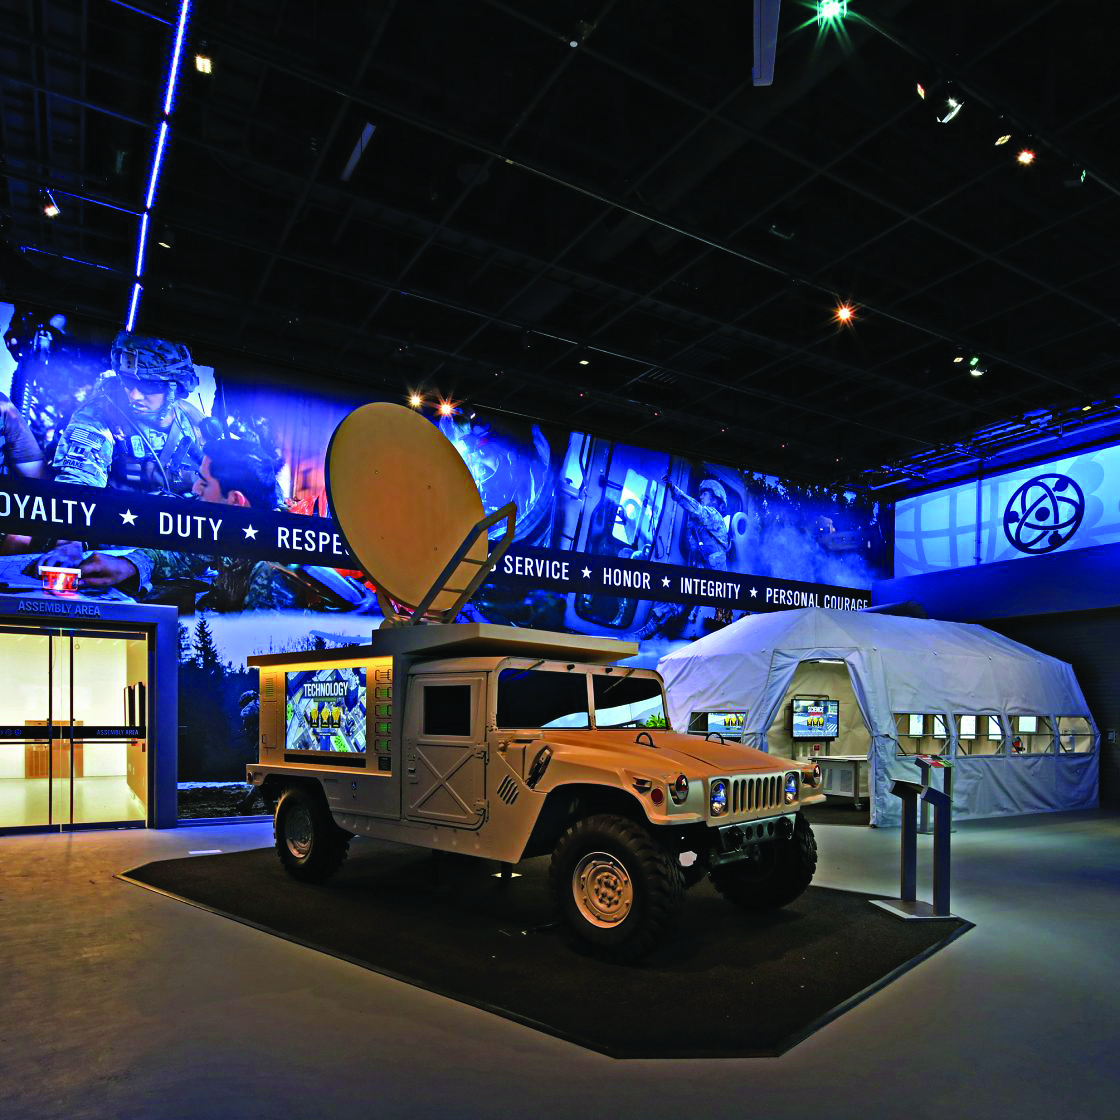 Museum features like the Experiential Learning Center provides a unique and immersive learning space for visitors and groups to participate in hands-on G-STEM learning activities and working in small teams to solve an Army humanitarian mission. (The Army Historical Foundation, Duane Lempke)